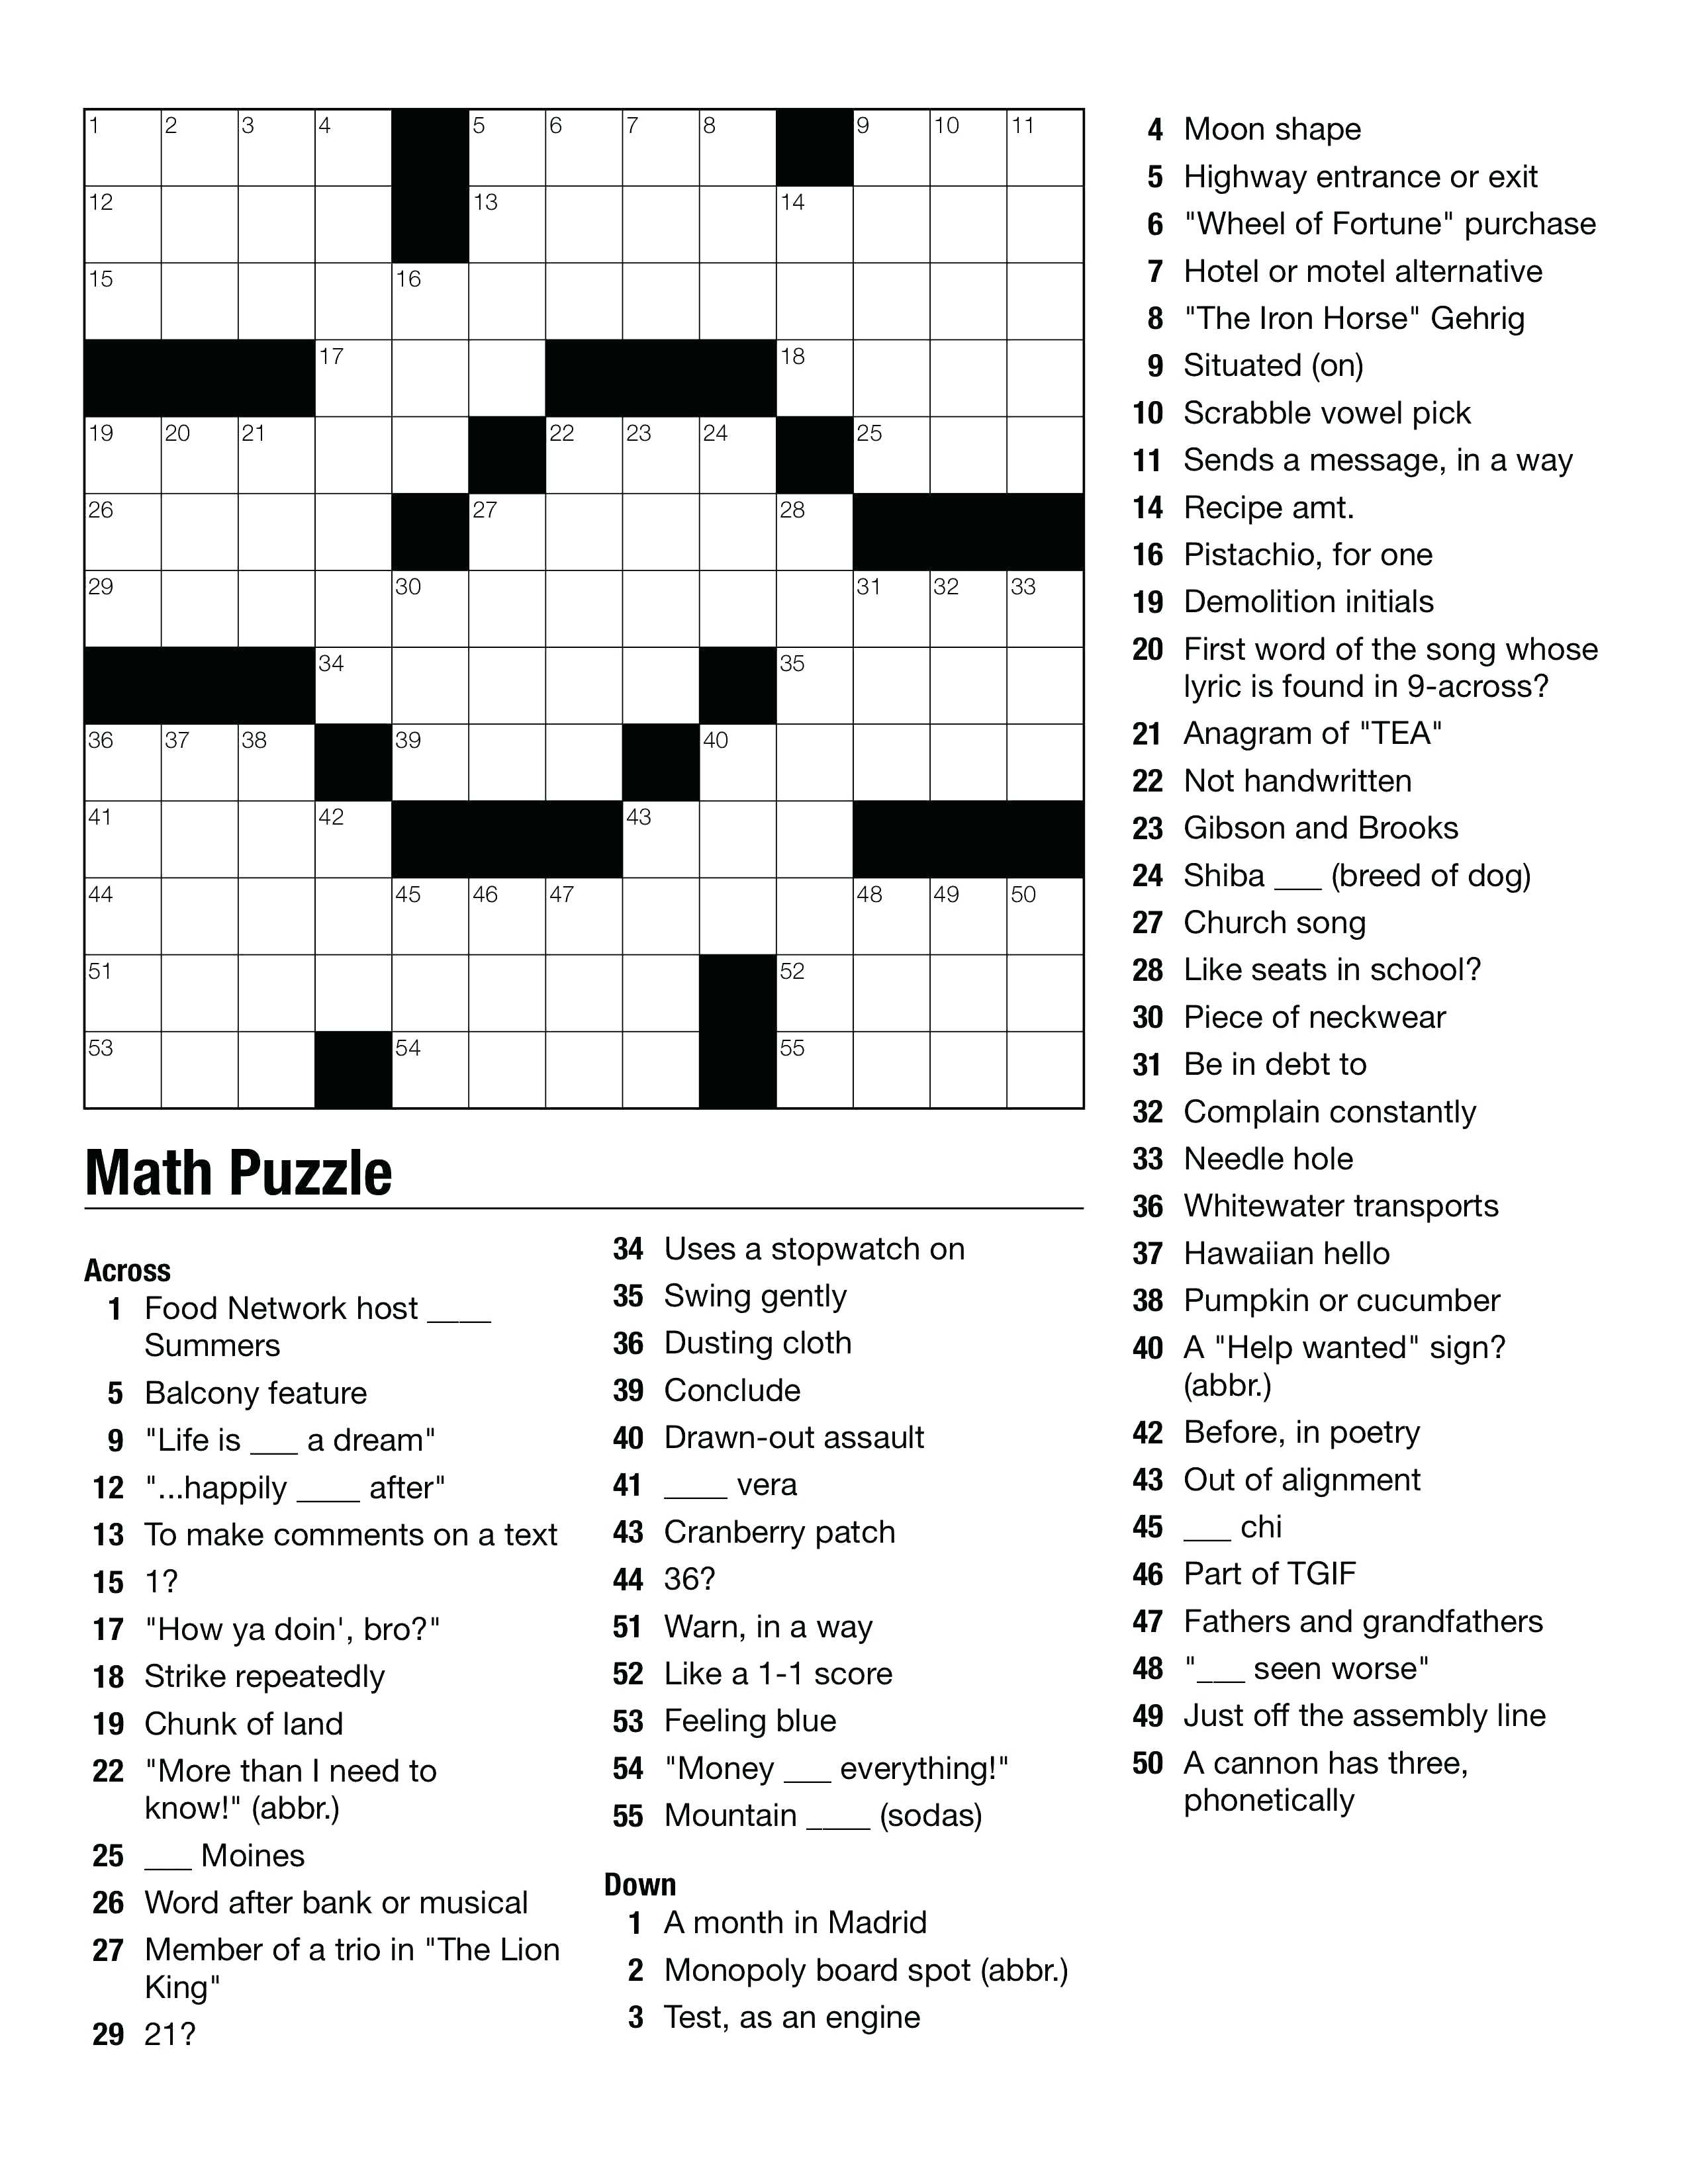 Geometry Puzzles Math Geometry Images Teaching Ideas On Crossword - Printable Math Crossword Puzzles For Middle School